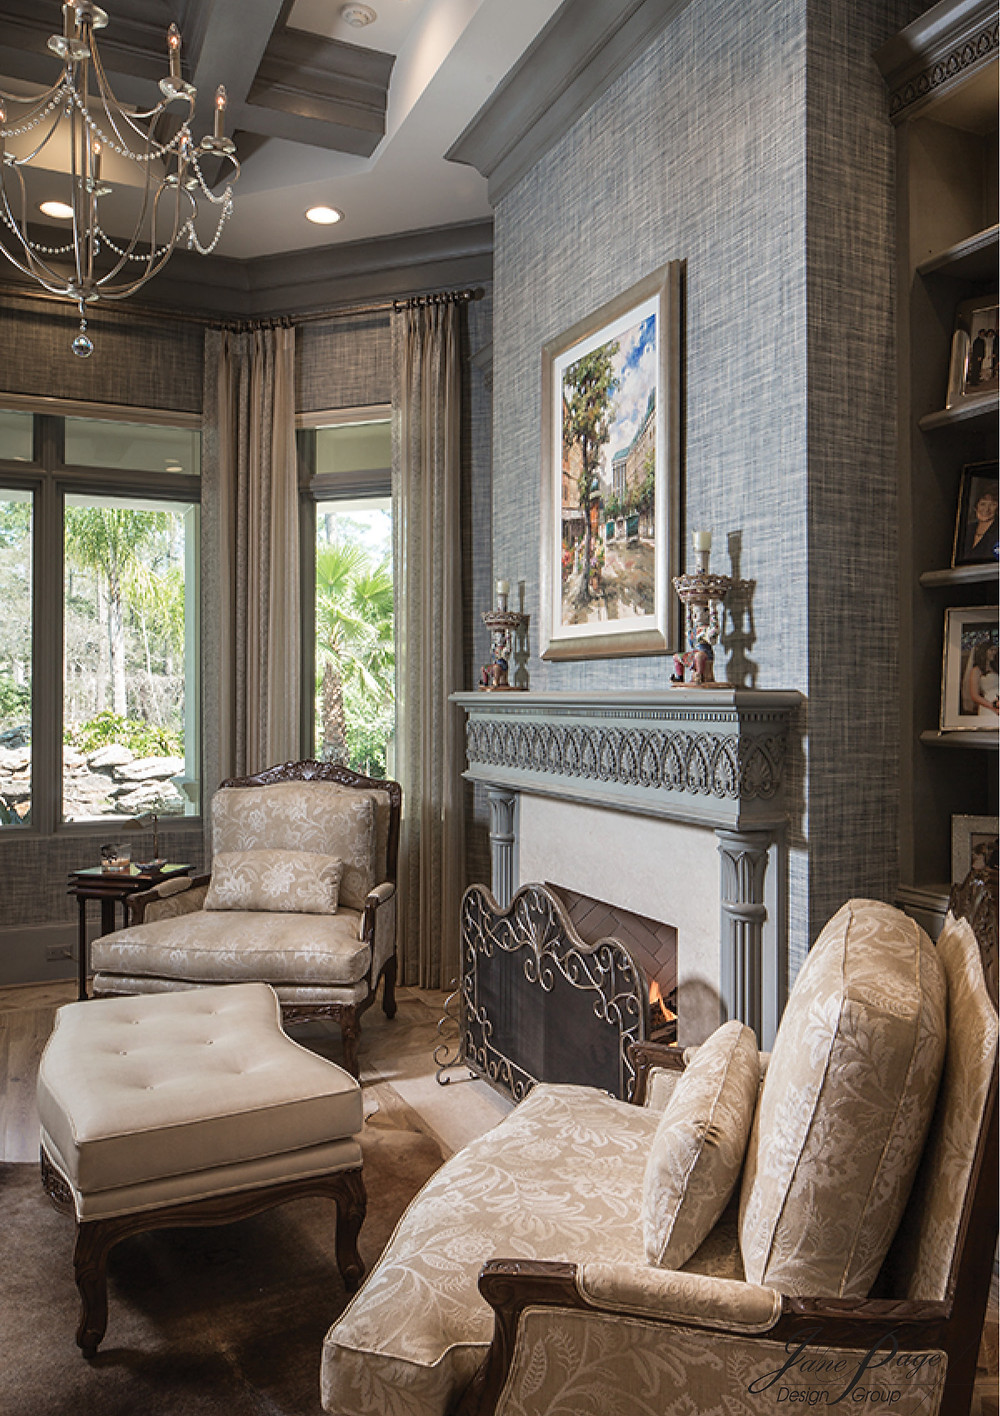 A Dramatic Home Study with Textured Wallpaper and Intricate Architectural Details